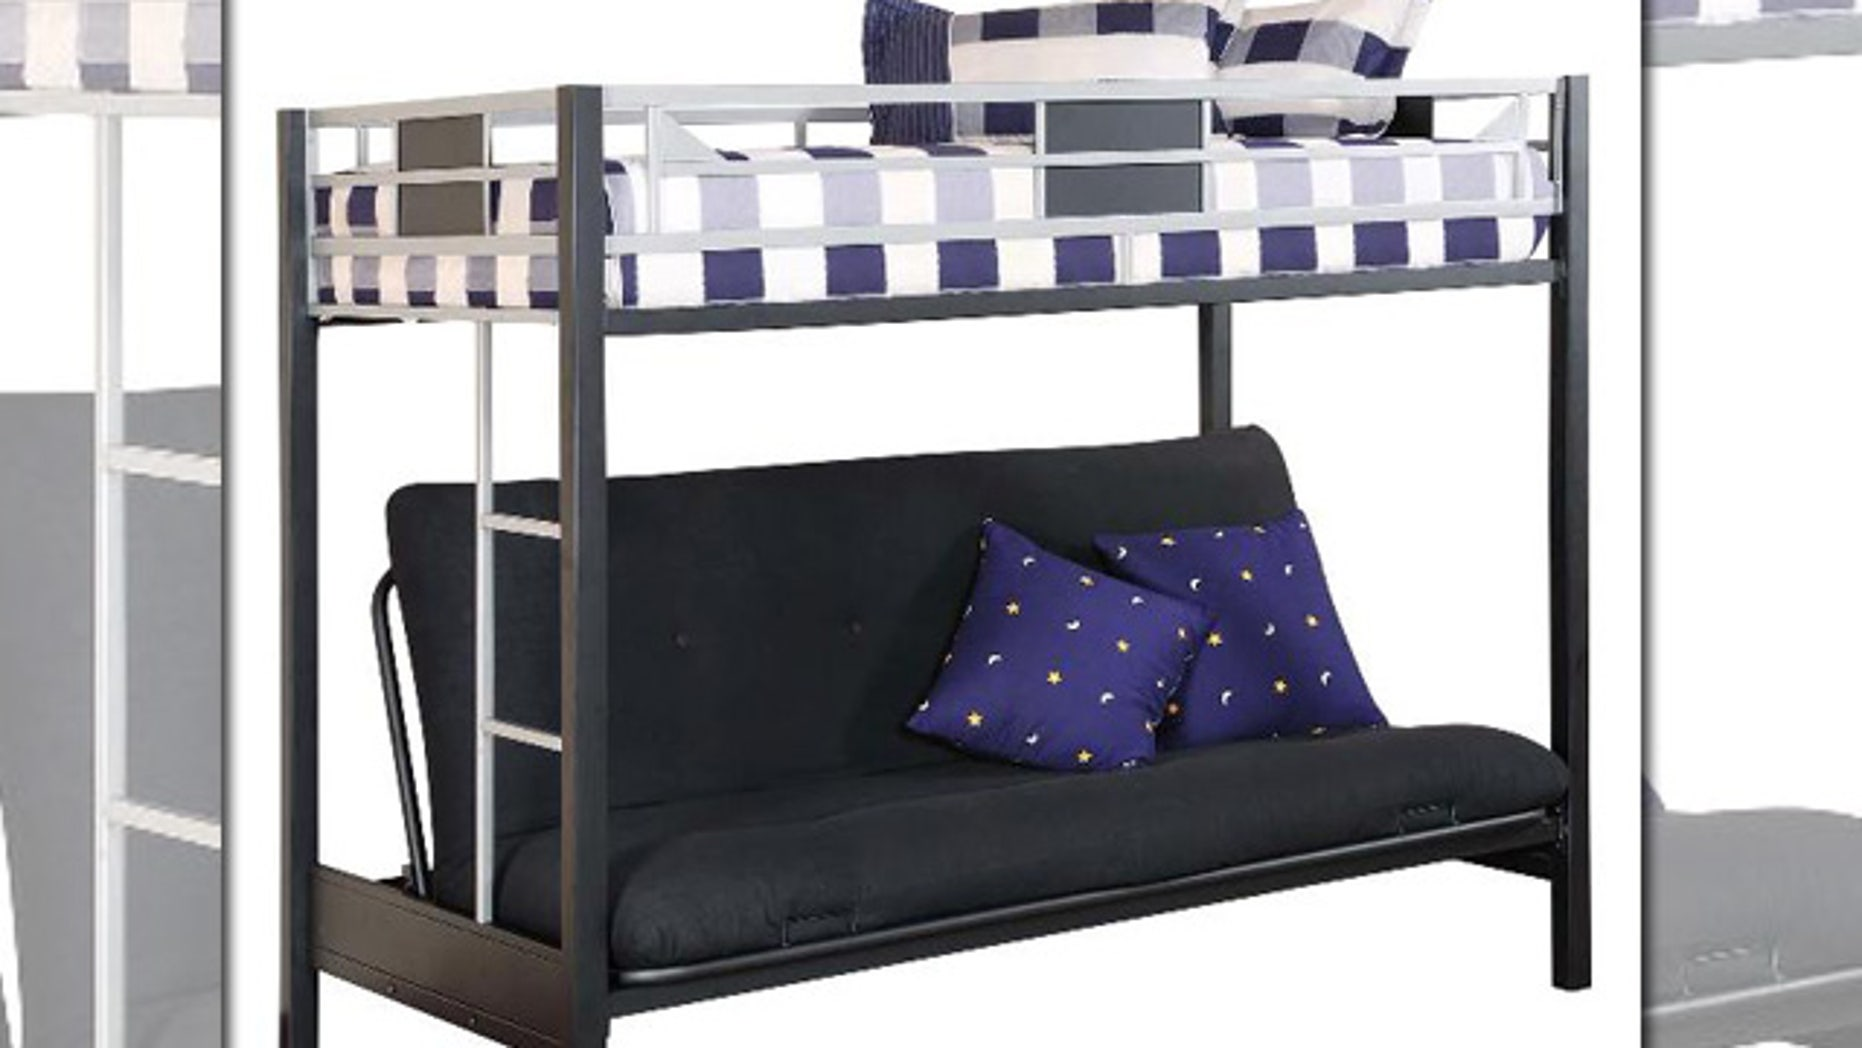 The recall involves metal futon bunk beds with model number BFB1008 located on a label on the upper bunk support rail.